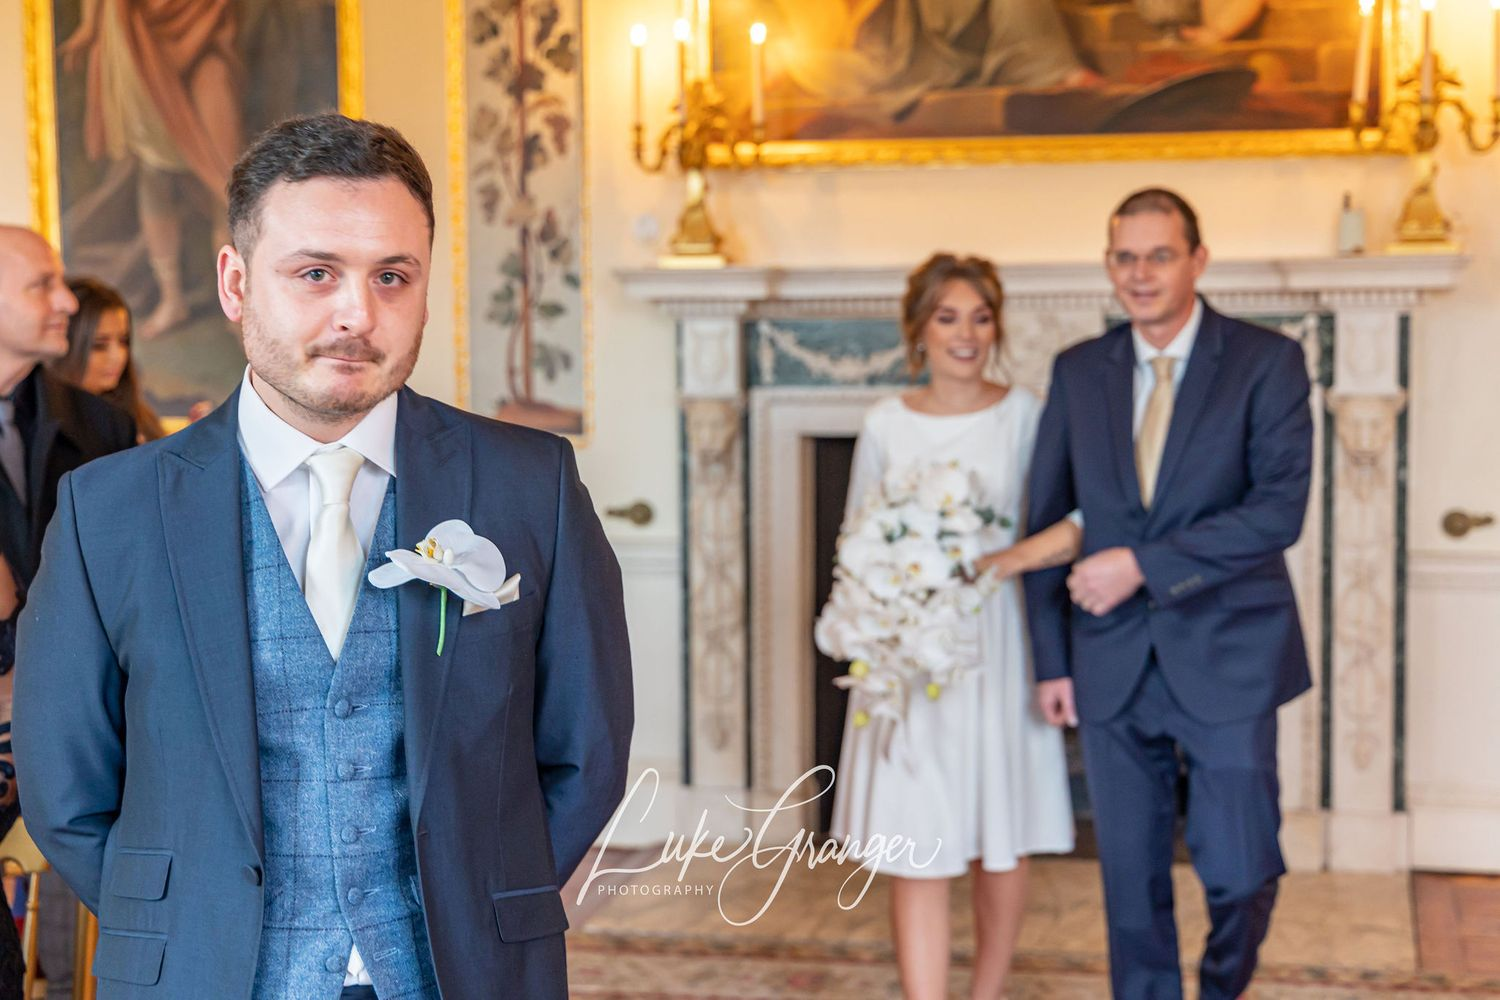 groom looking nervous as bride and her dad walk up the isle